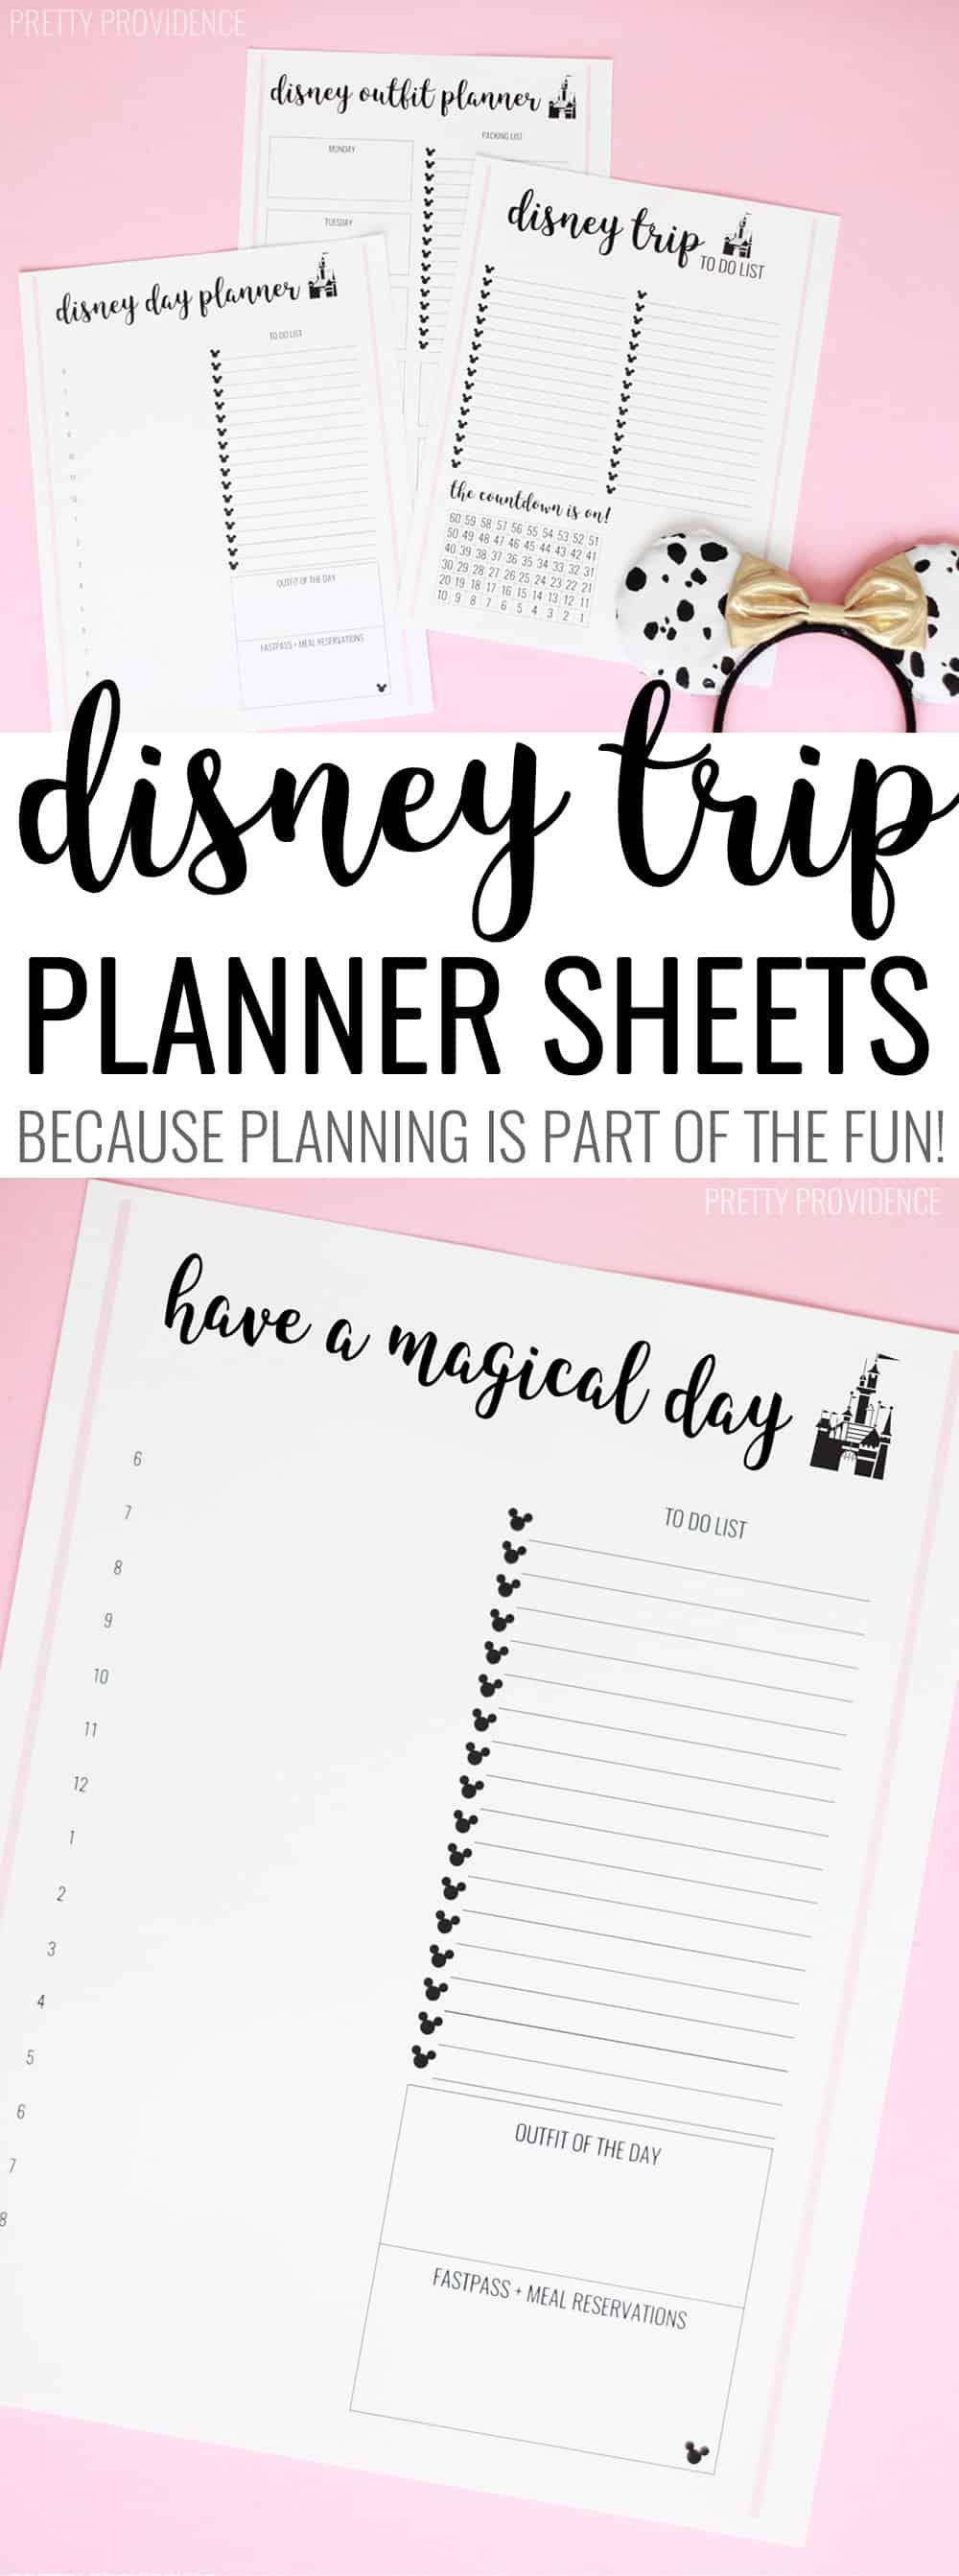 These free Disney trip planner sheets are so helpful when you're getting ready for a trip to Disney World or Disneyland!